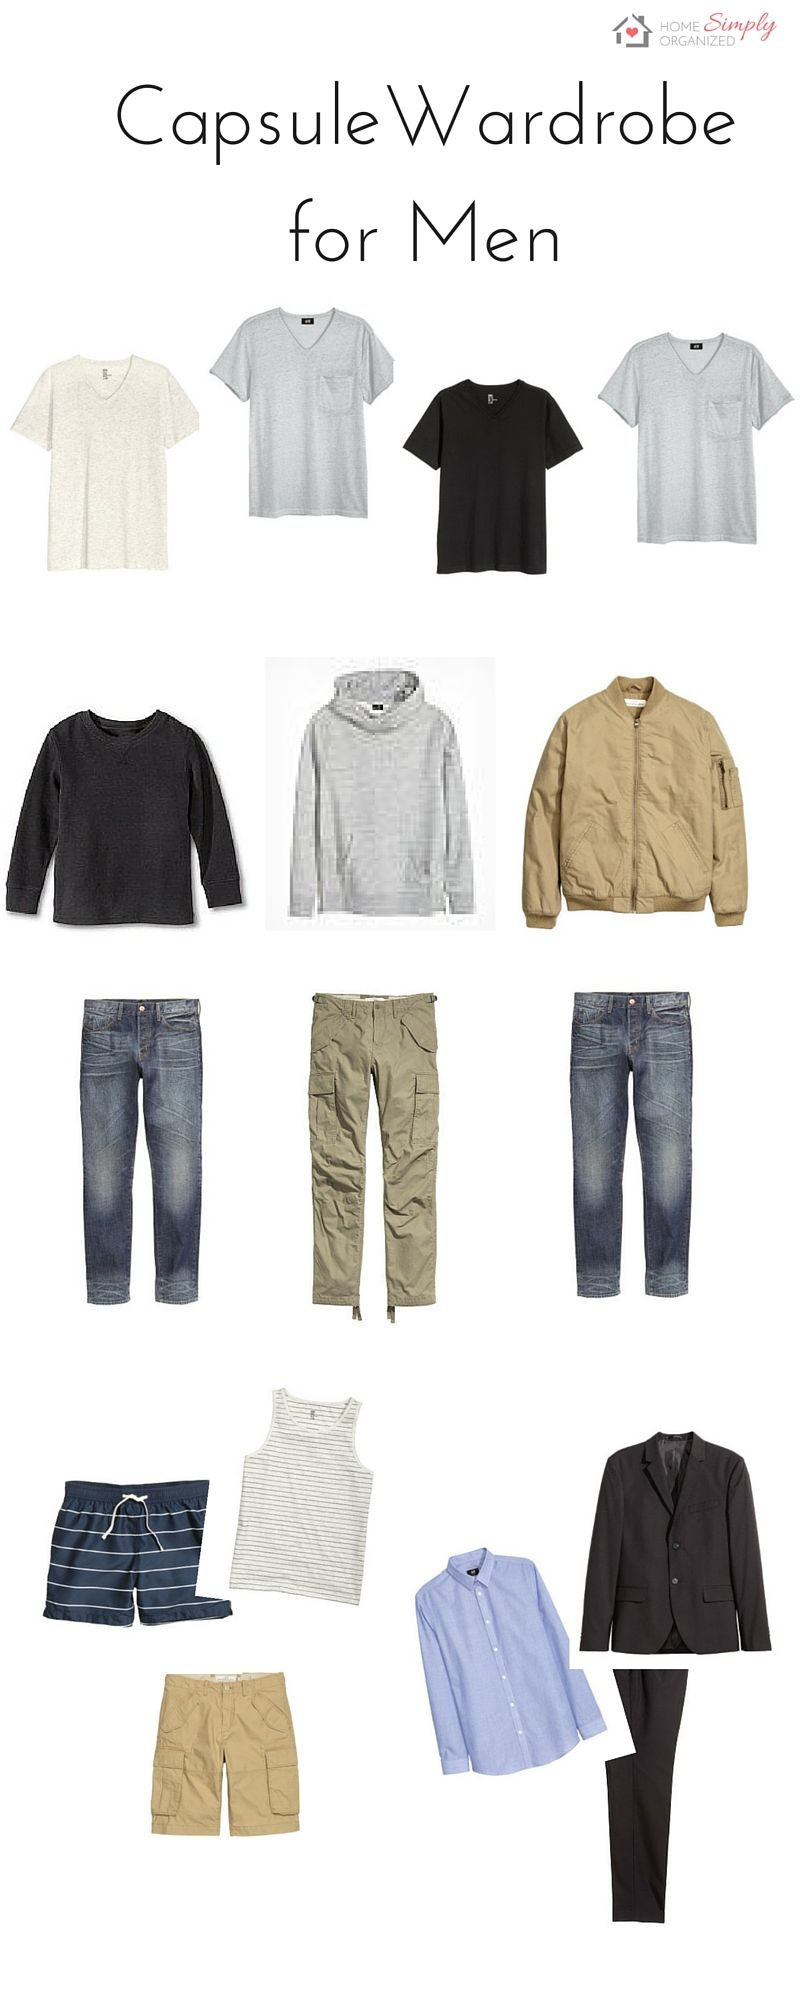 Capsule Wardrobes For Men